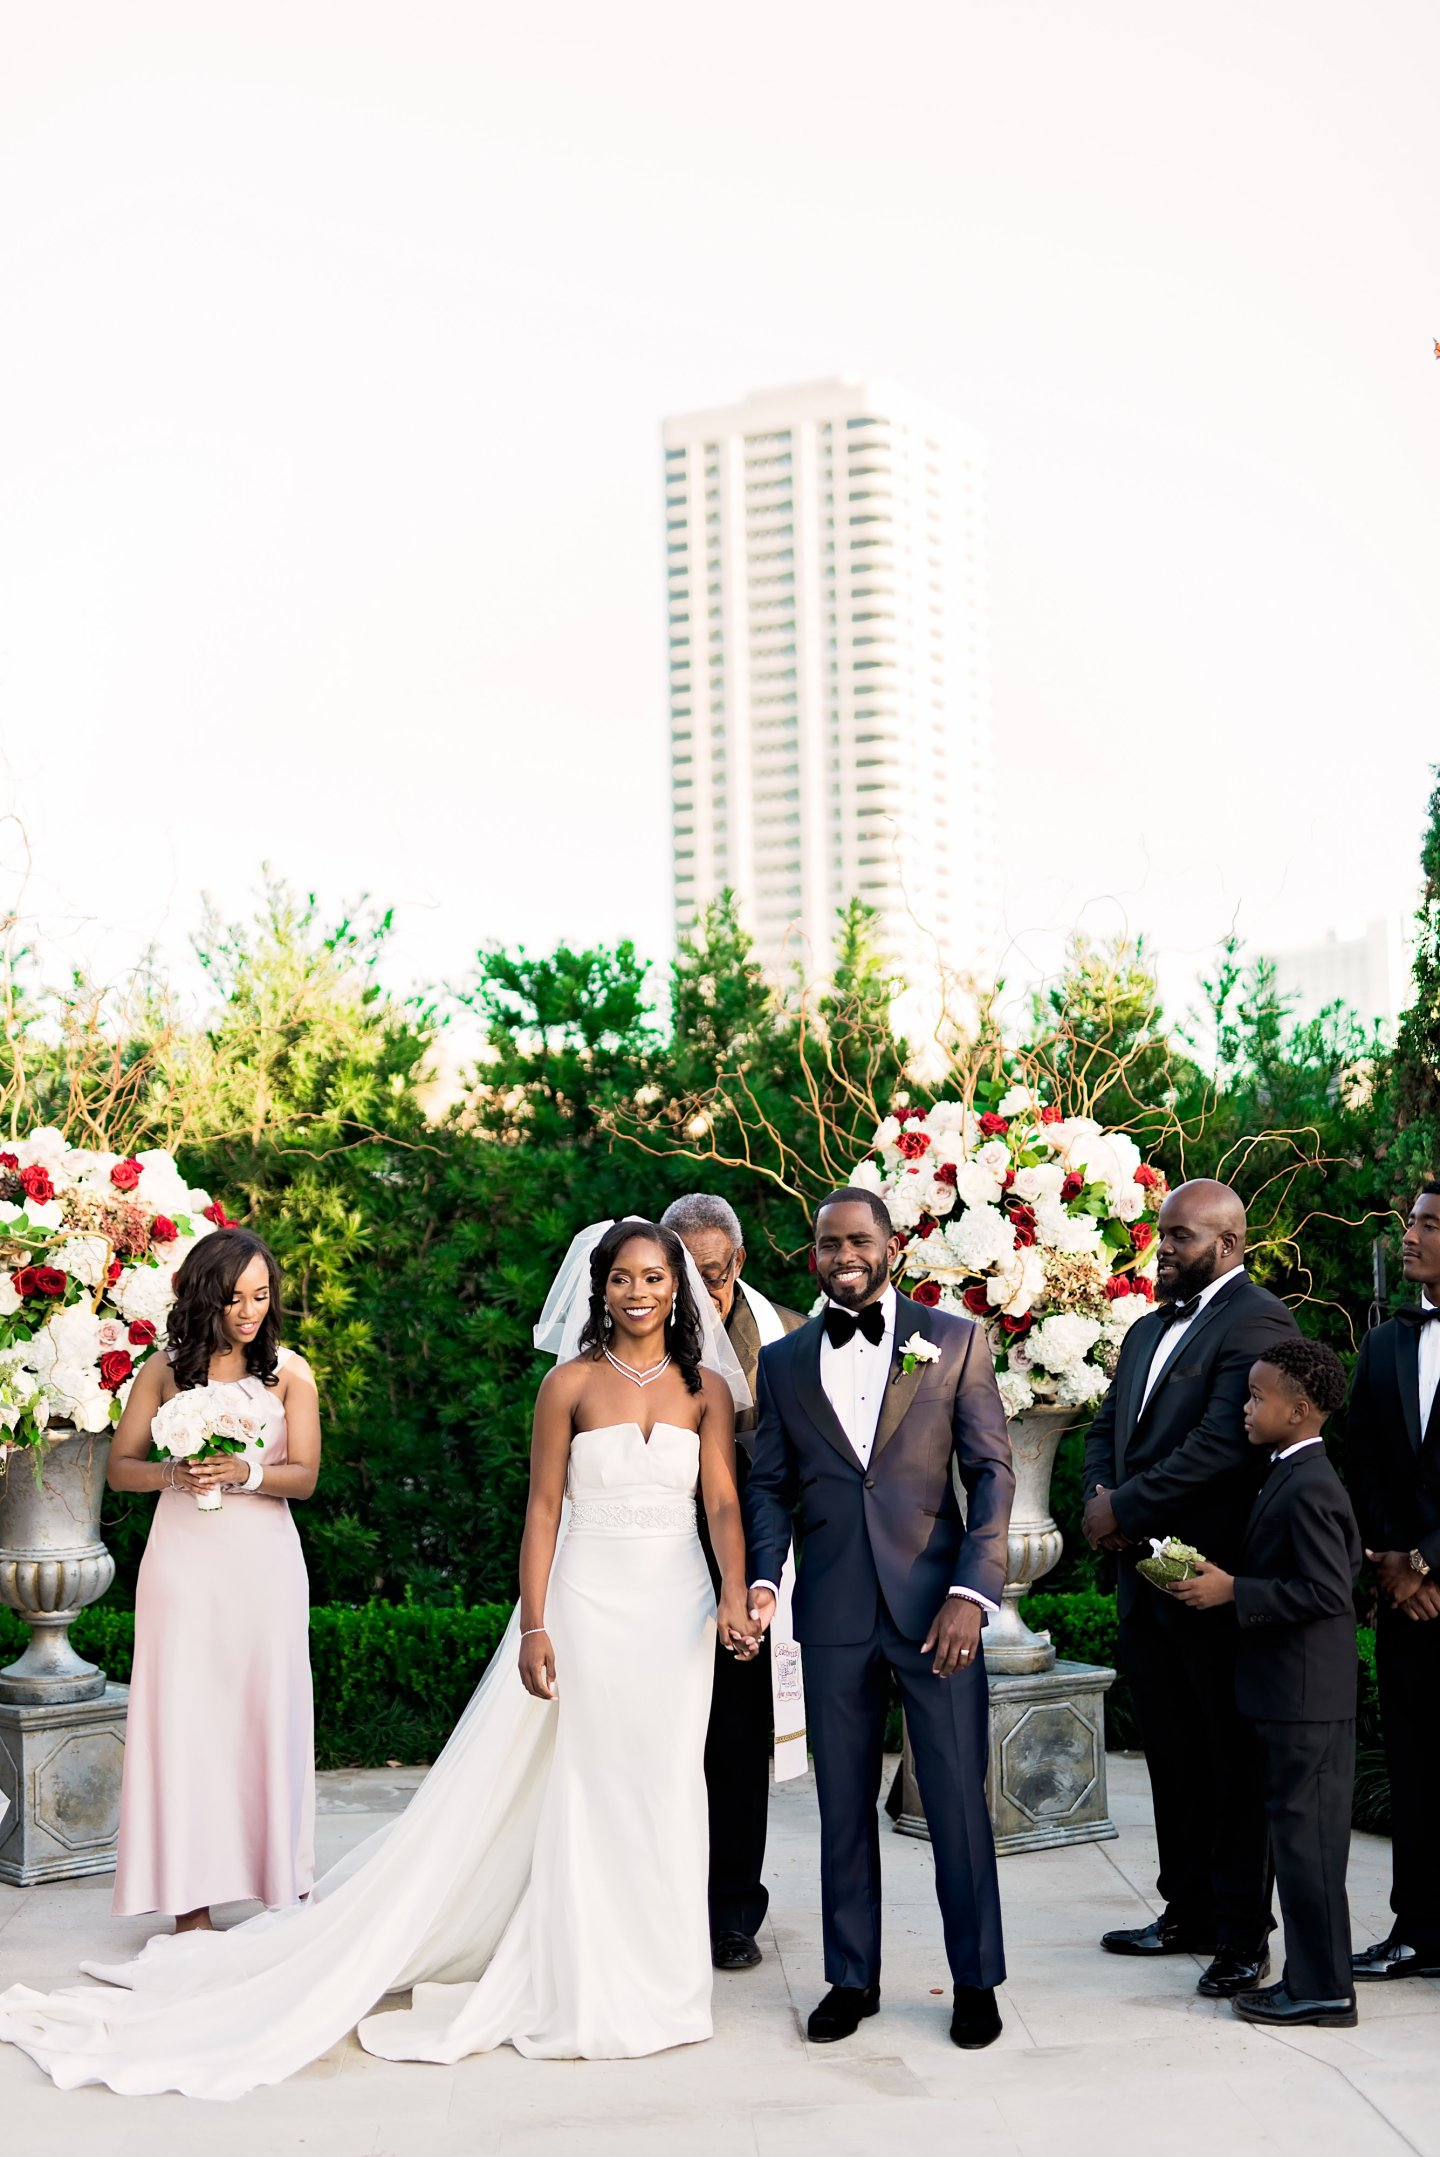 Andre-and-Gina-Pharris-Photography-0050 Houston, TX Wedding at the Buffalo Soldier Museum